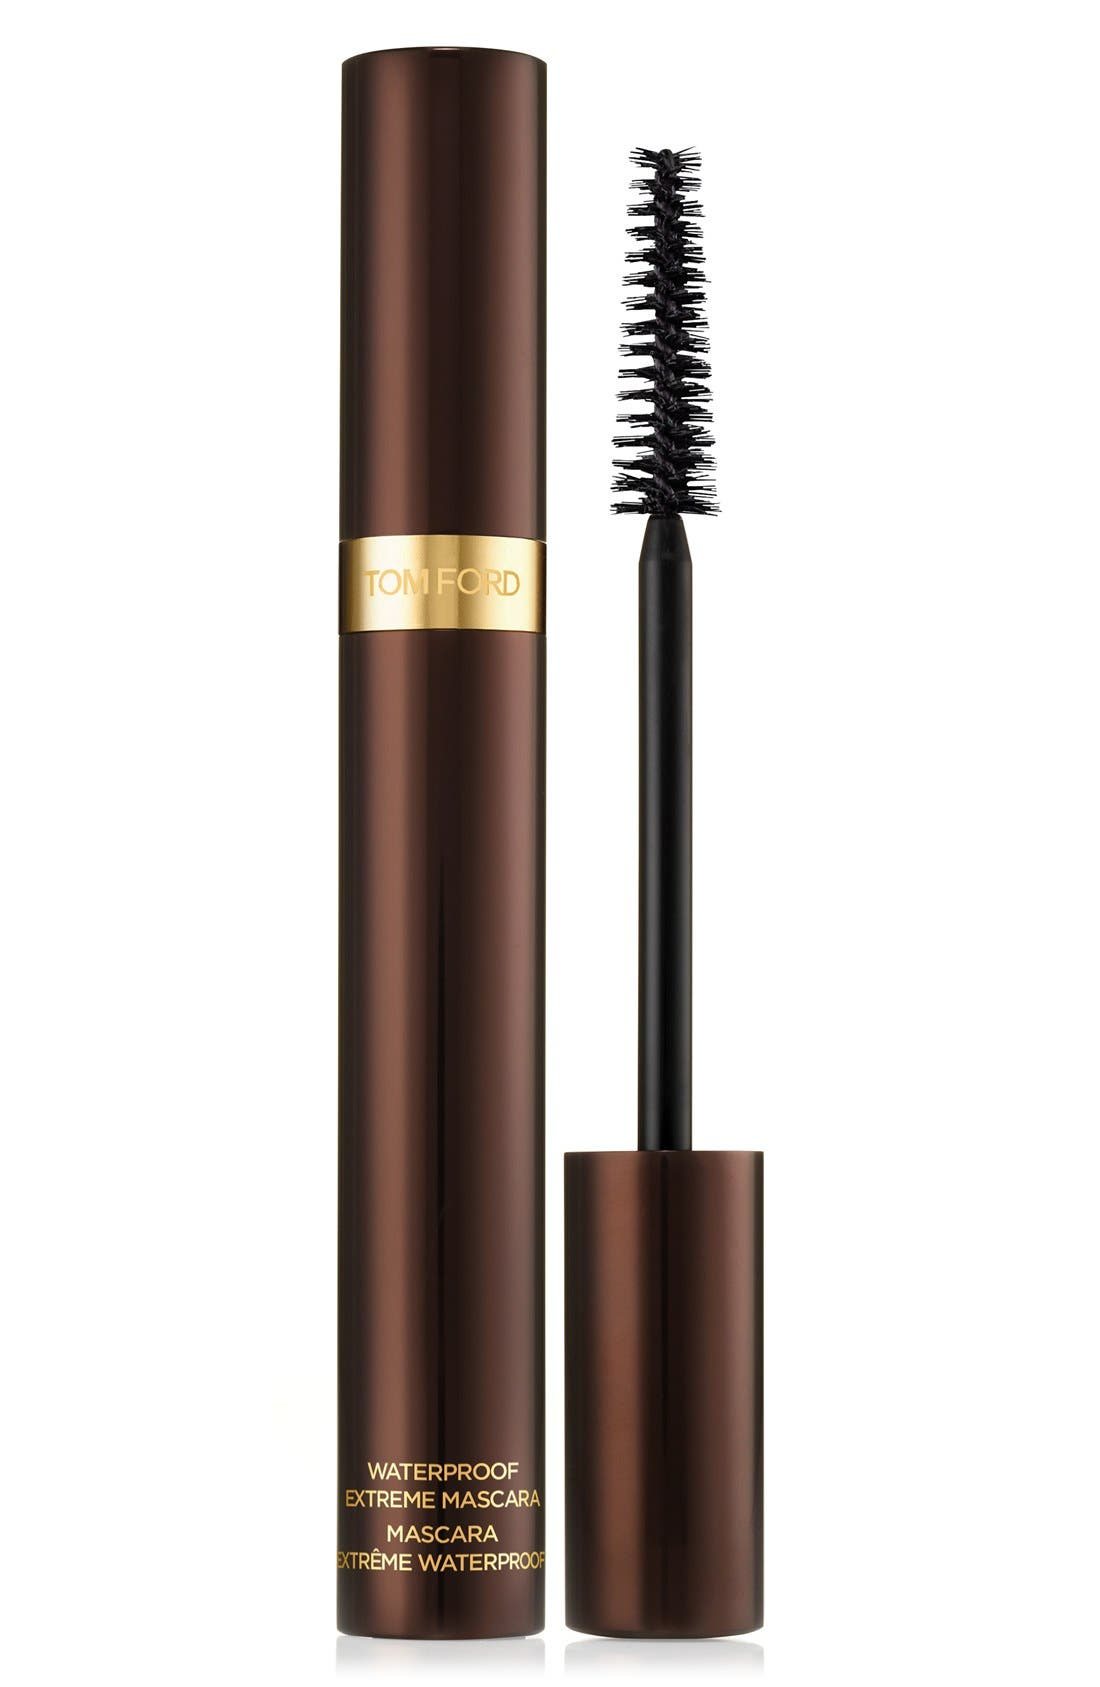 Tom Ford Waterproof Extreme Mascara